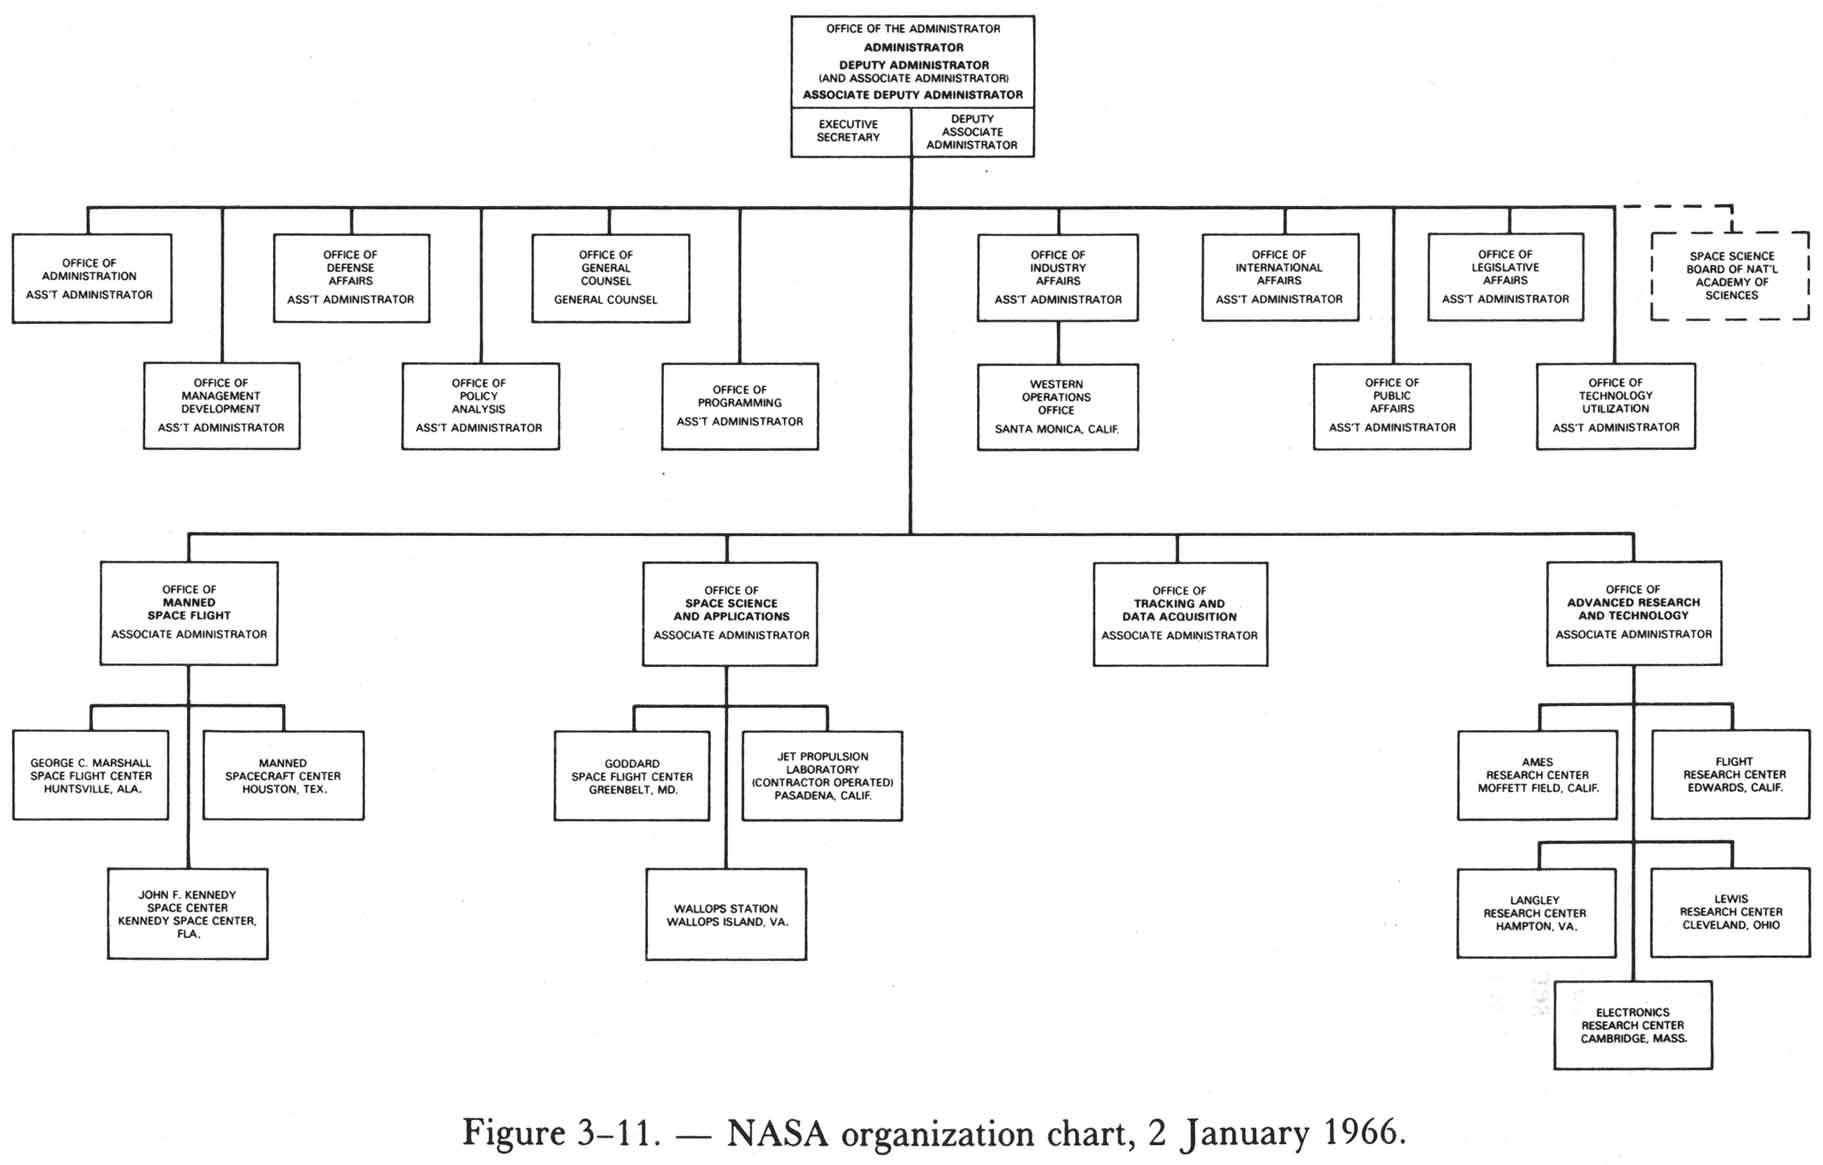 circular org chart nasa - photo #24